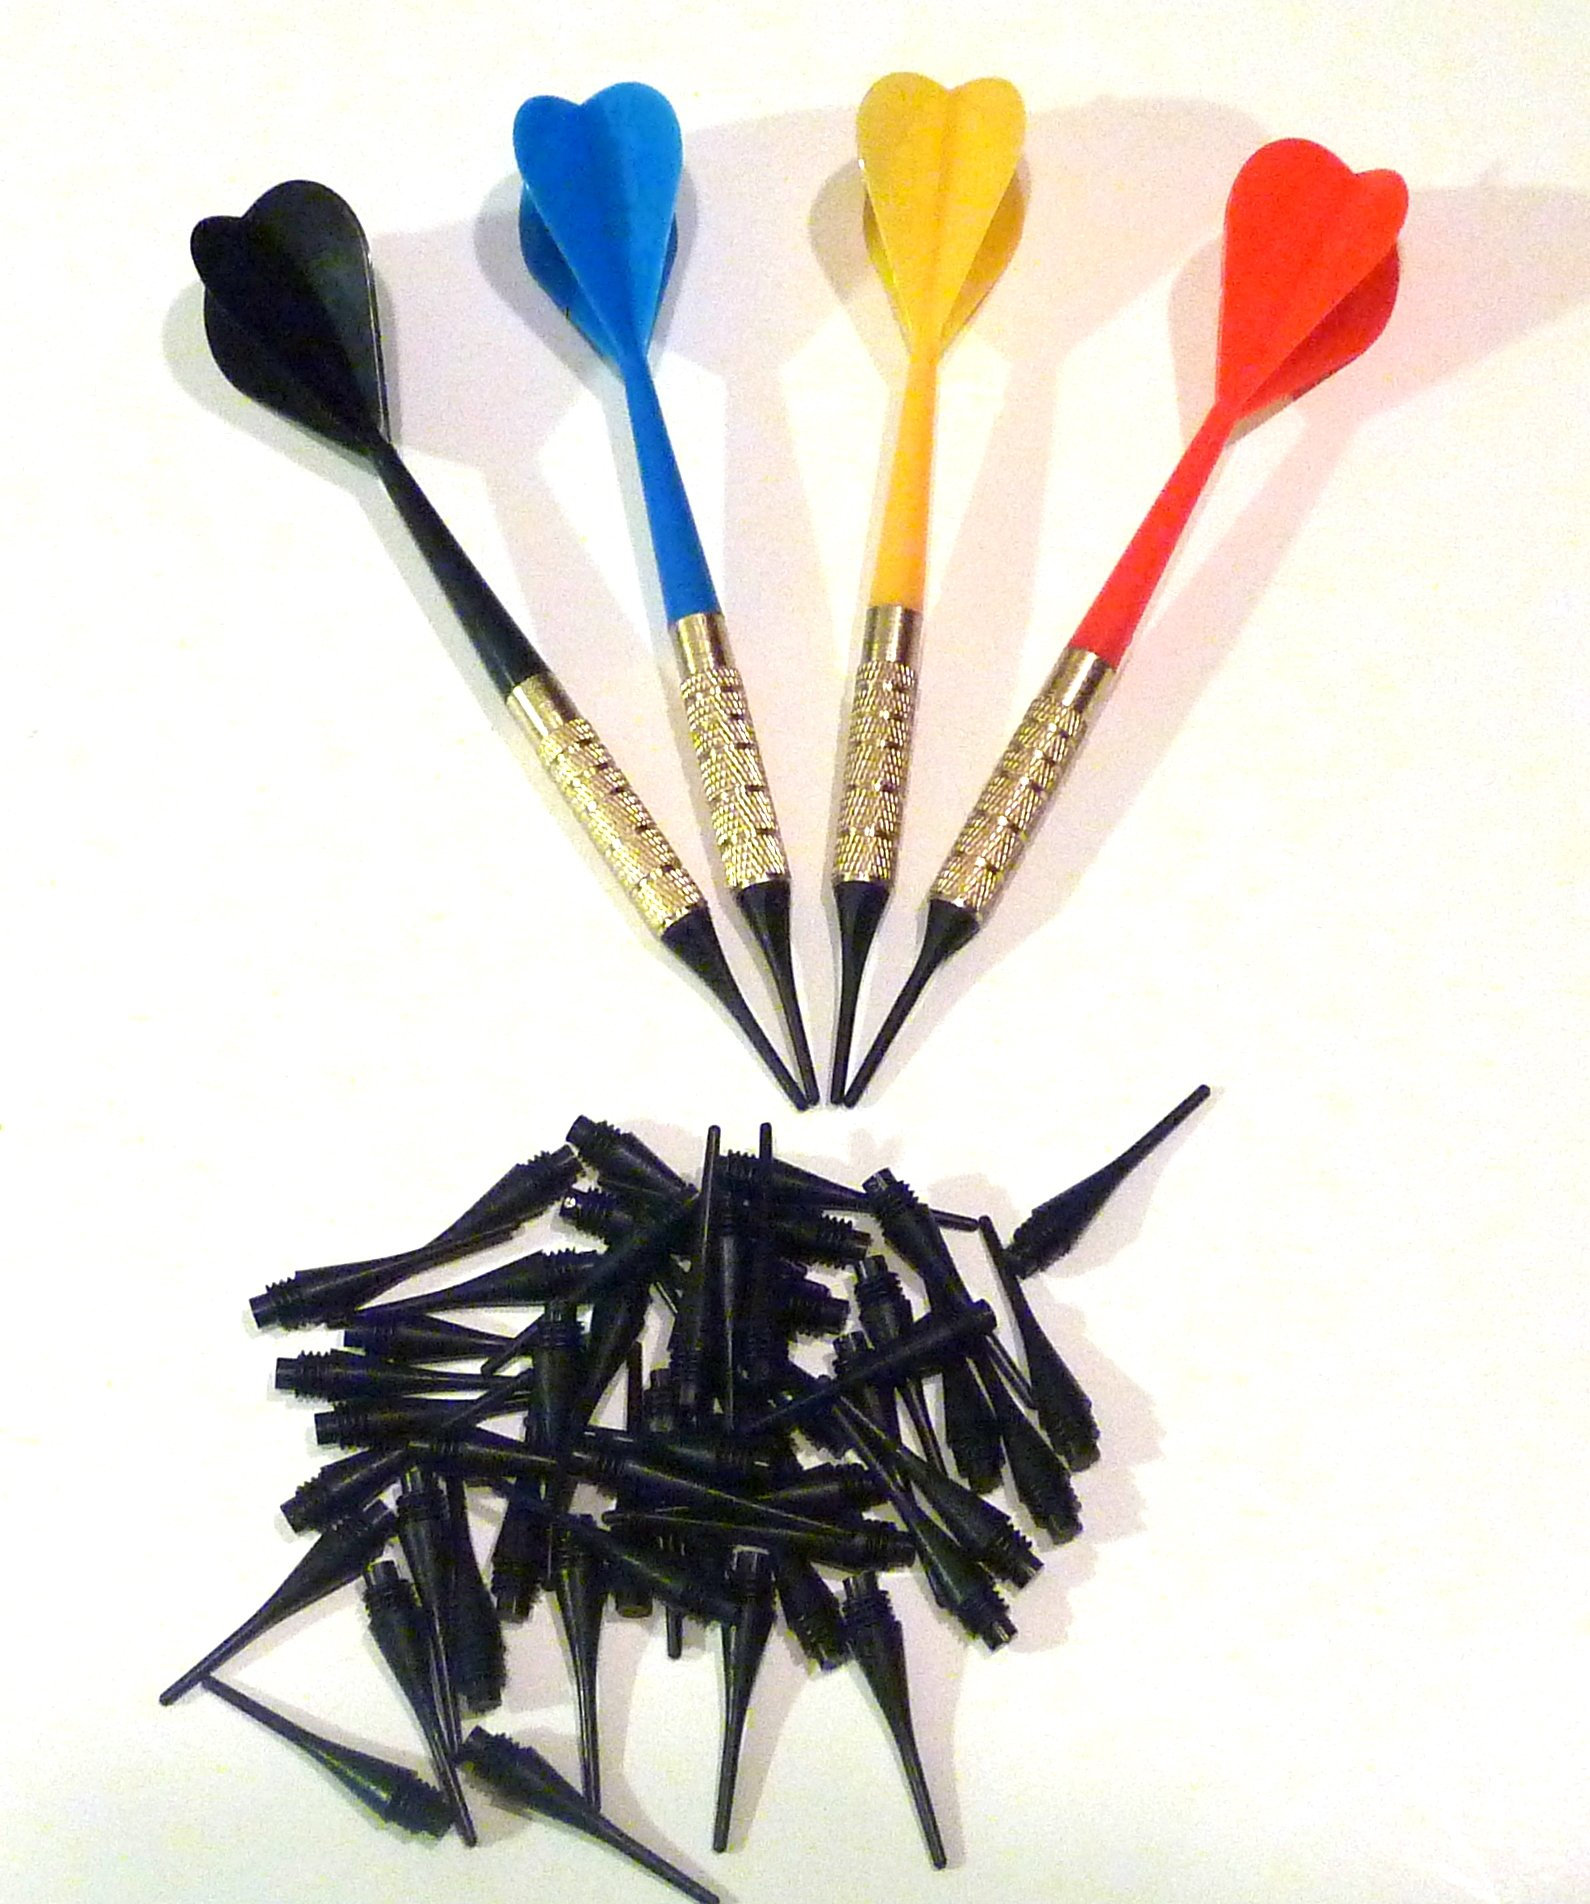 Dart Pro Plastic Soft Tip Darts, Lot of 12 Assorted Colors Plus 50 Extra Tips